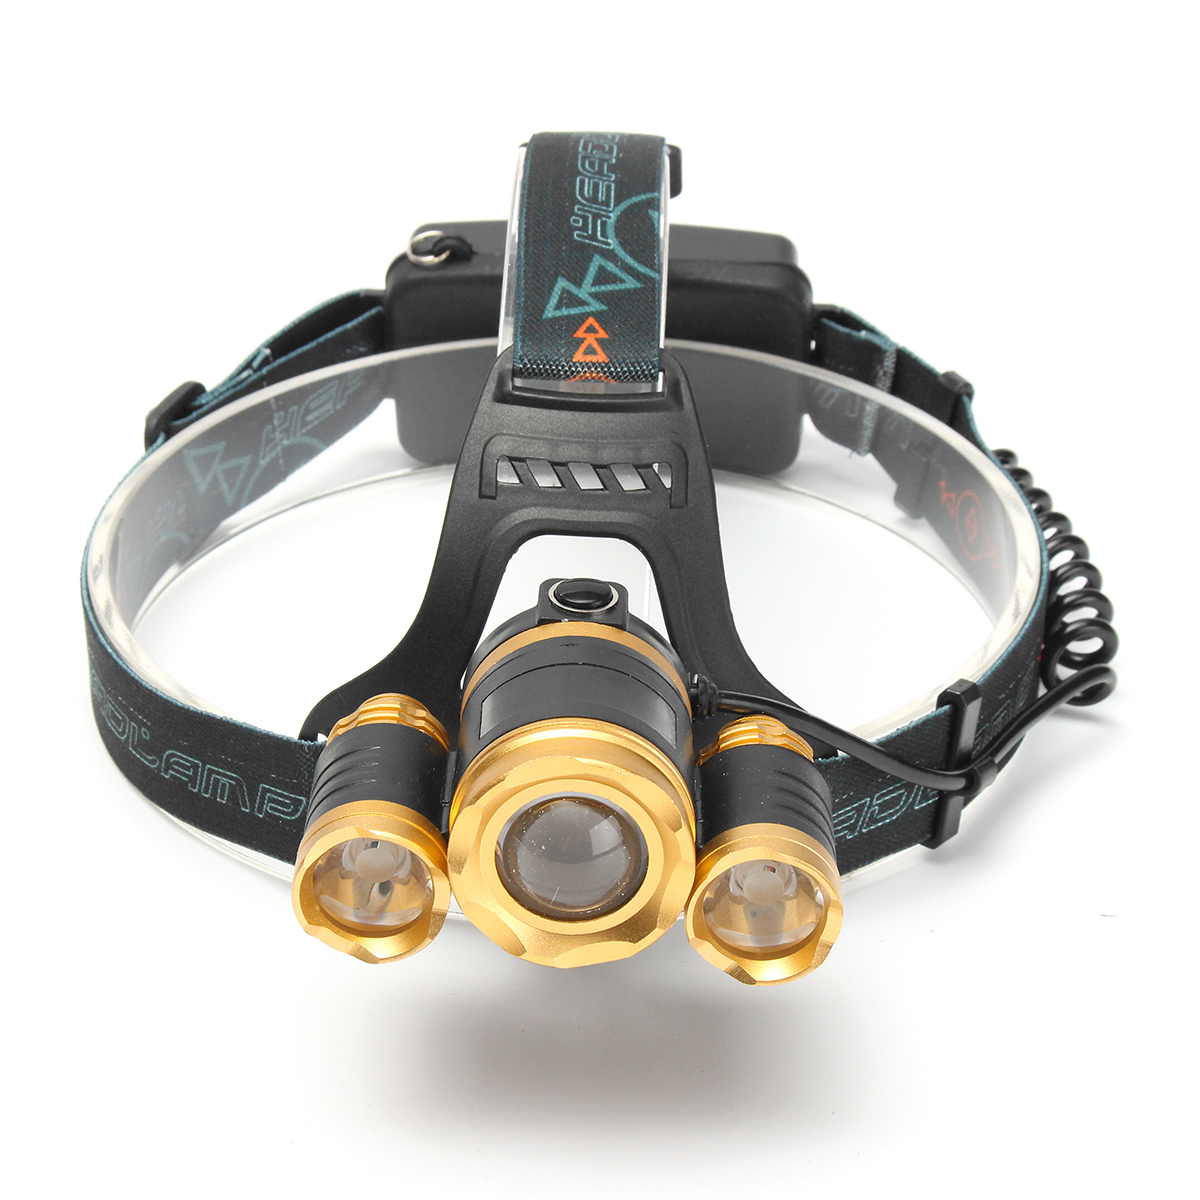 Elfeland 6000Lumens 3xT6 LED Zoomable Rechargeable Headlamp Headlight Flashlight Torch Waterproof 3 Modes (Just Headlamp)